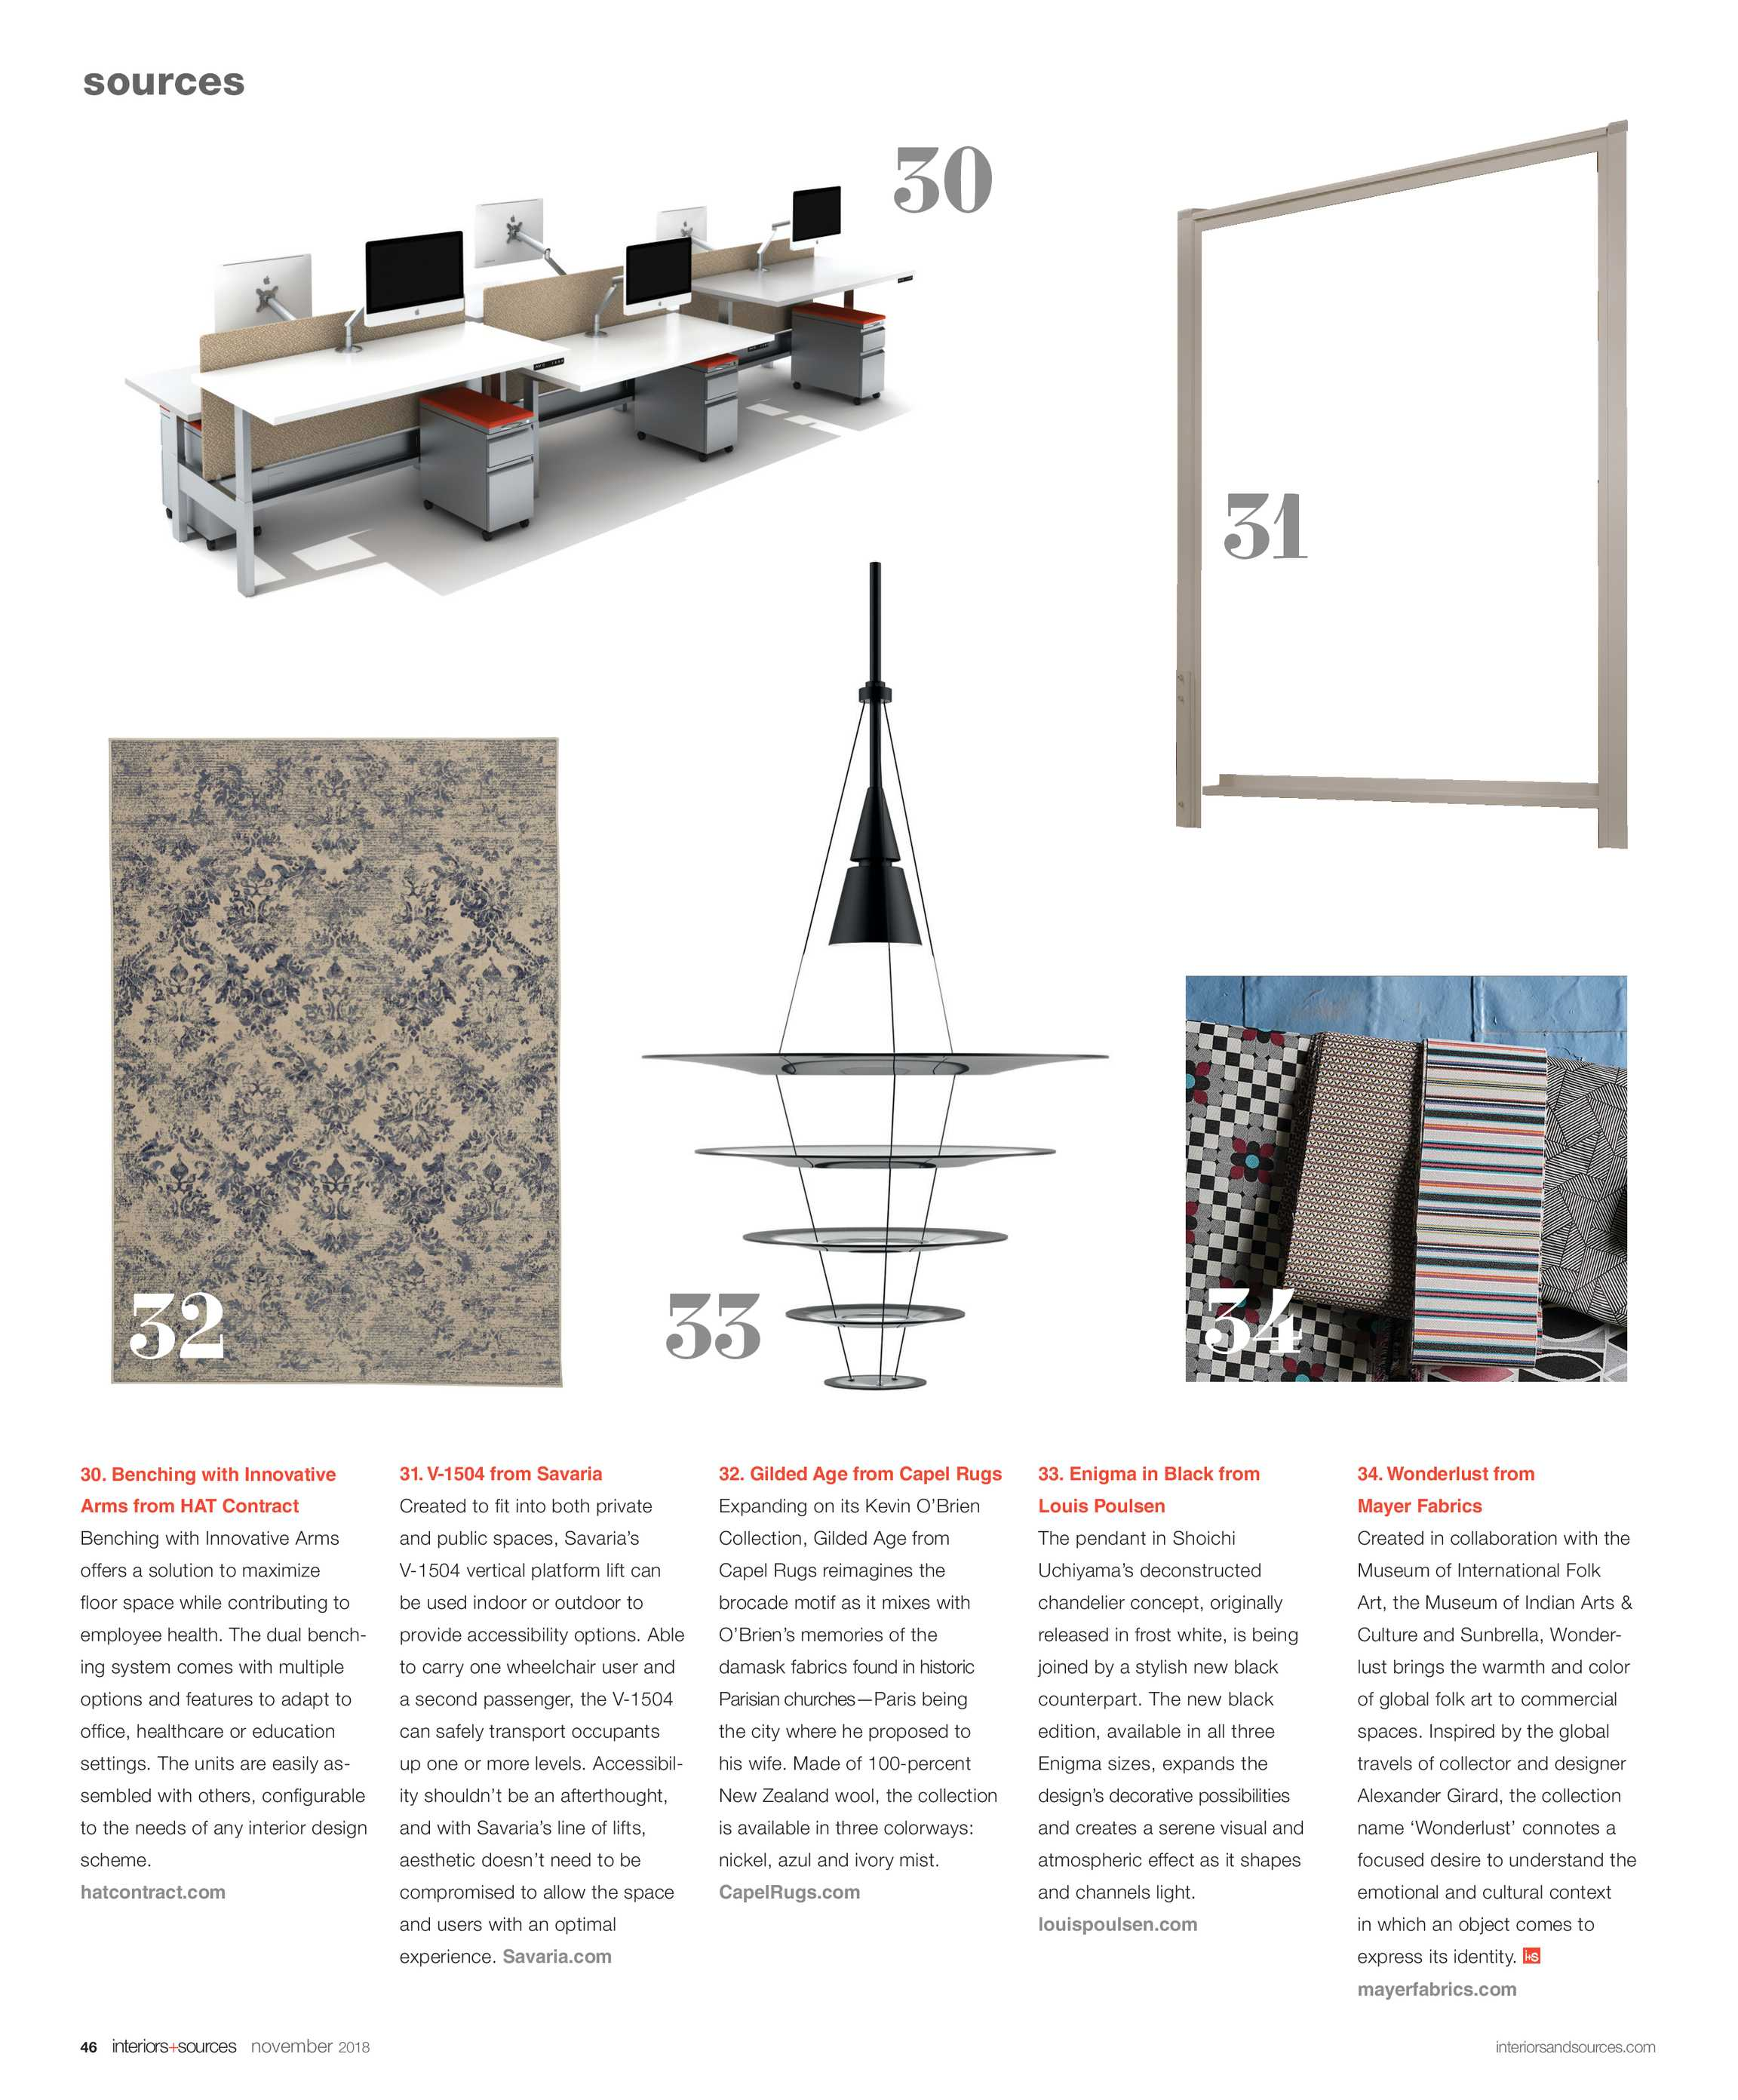 Interiors and Sources - November 2018 - page 46